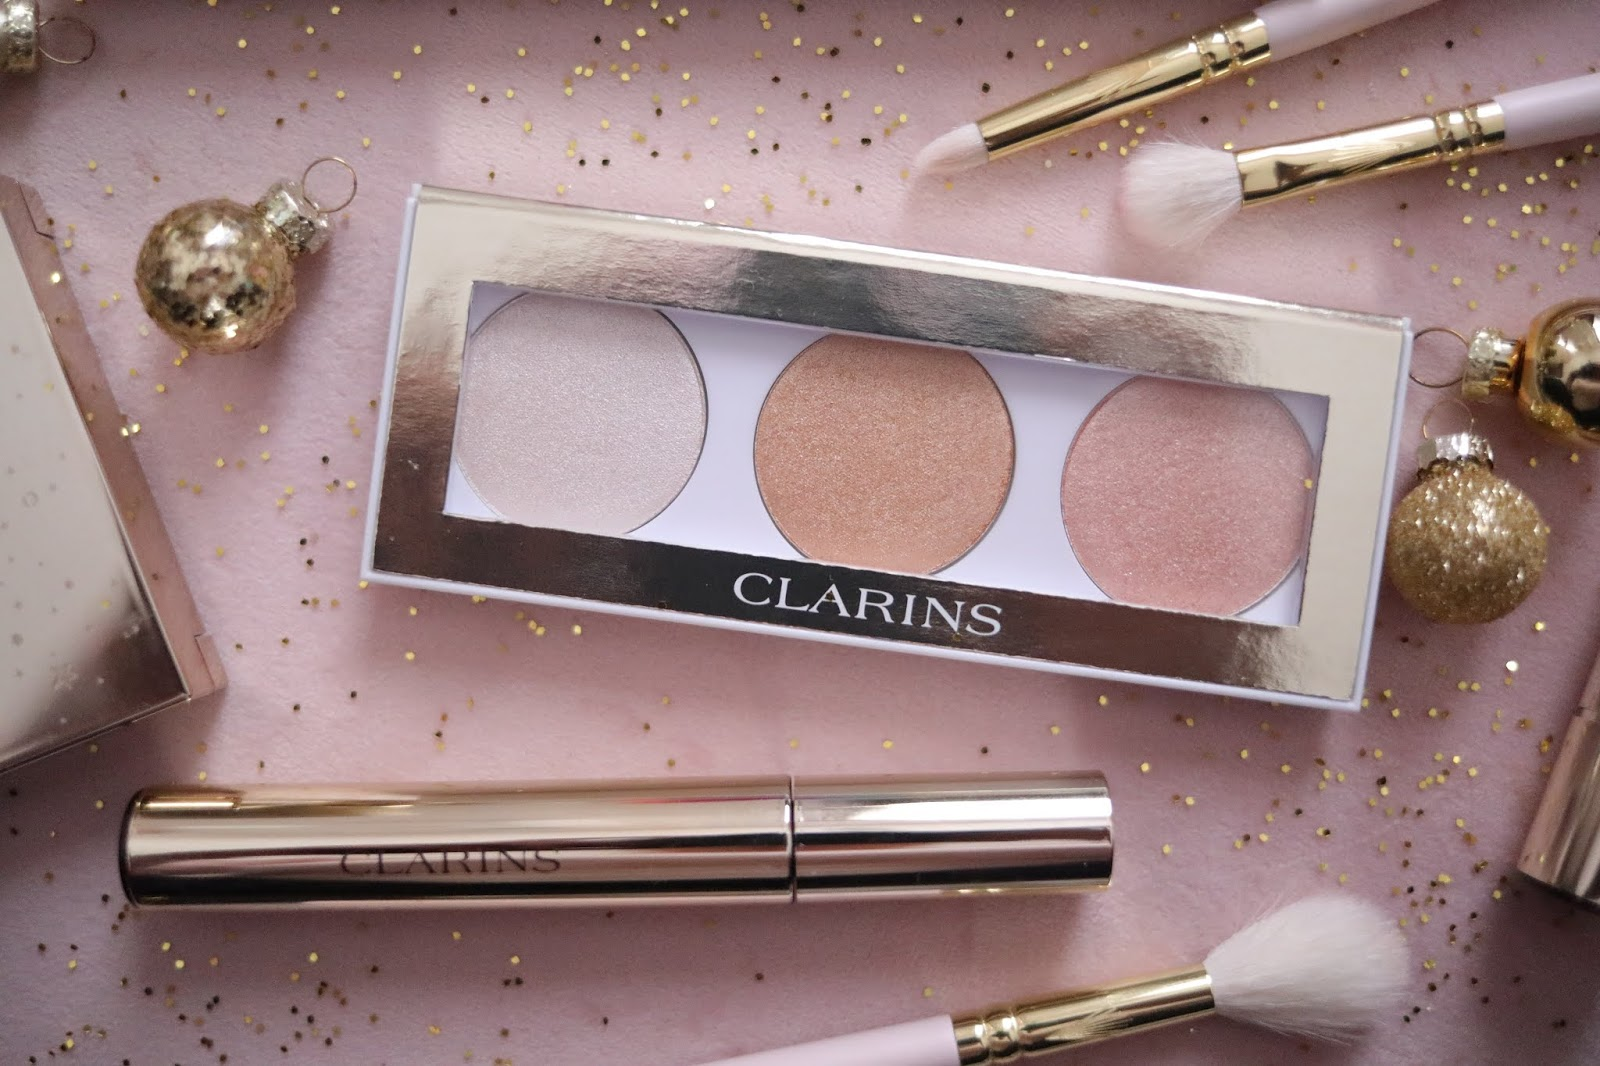 CHRISTMAS WITH CLARINS, CLARINS FRANCE  , CLARINS , EYE MAKE-UP PALETTE , Noël 2019 , revue beauté , rose mademoiselle , rosemademoiselle,blog beauté , paris